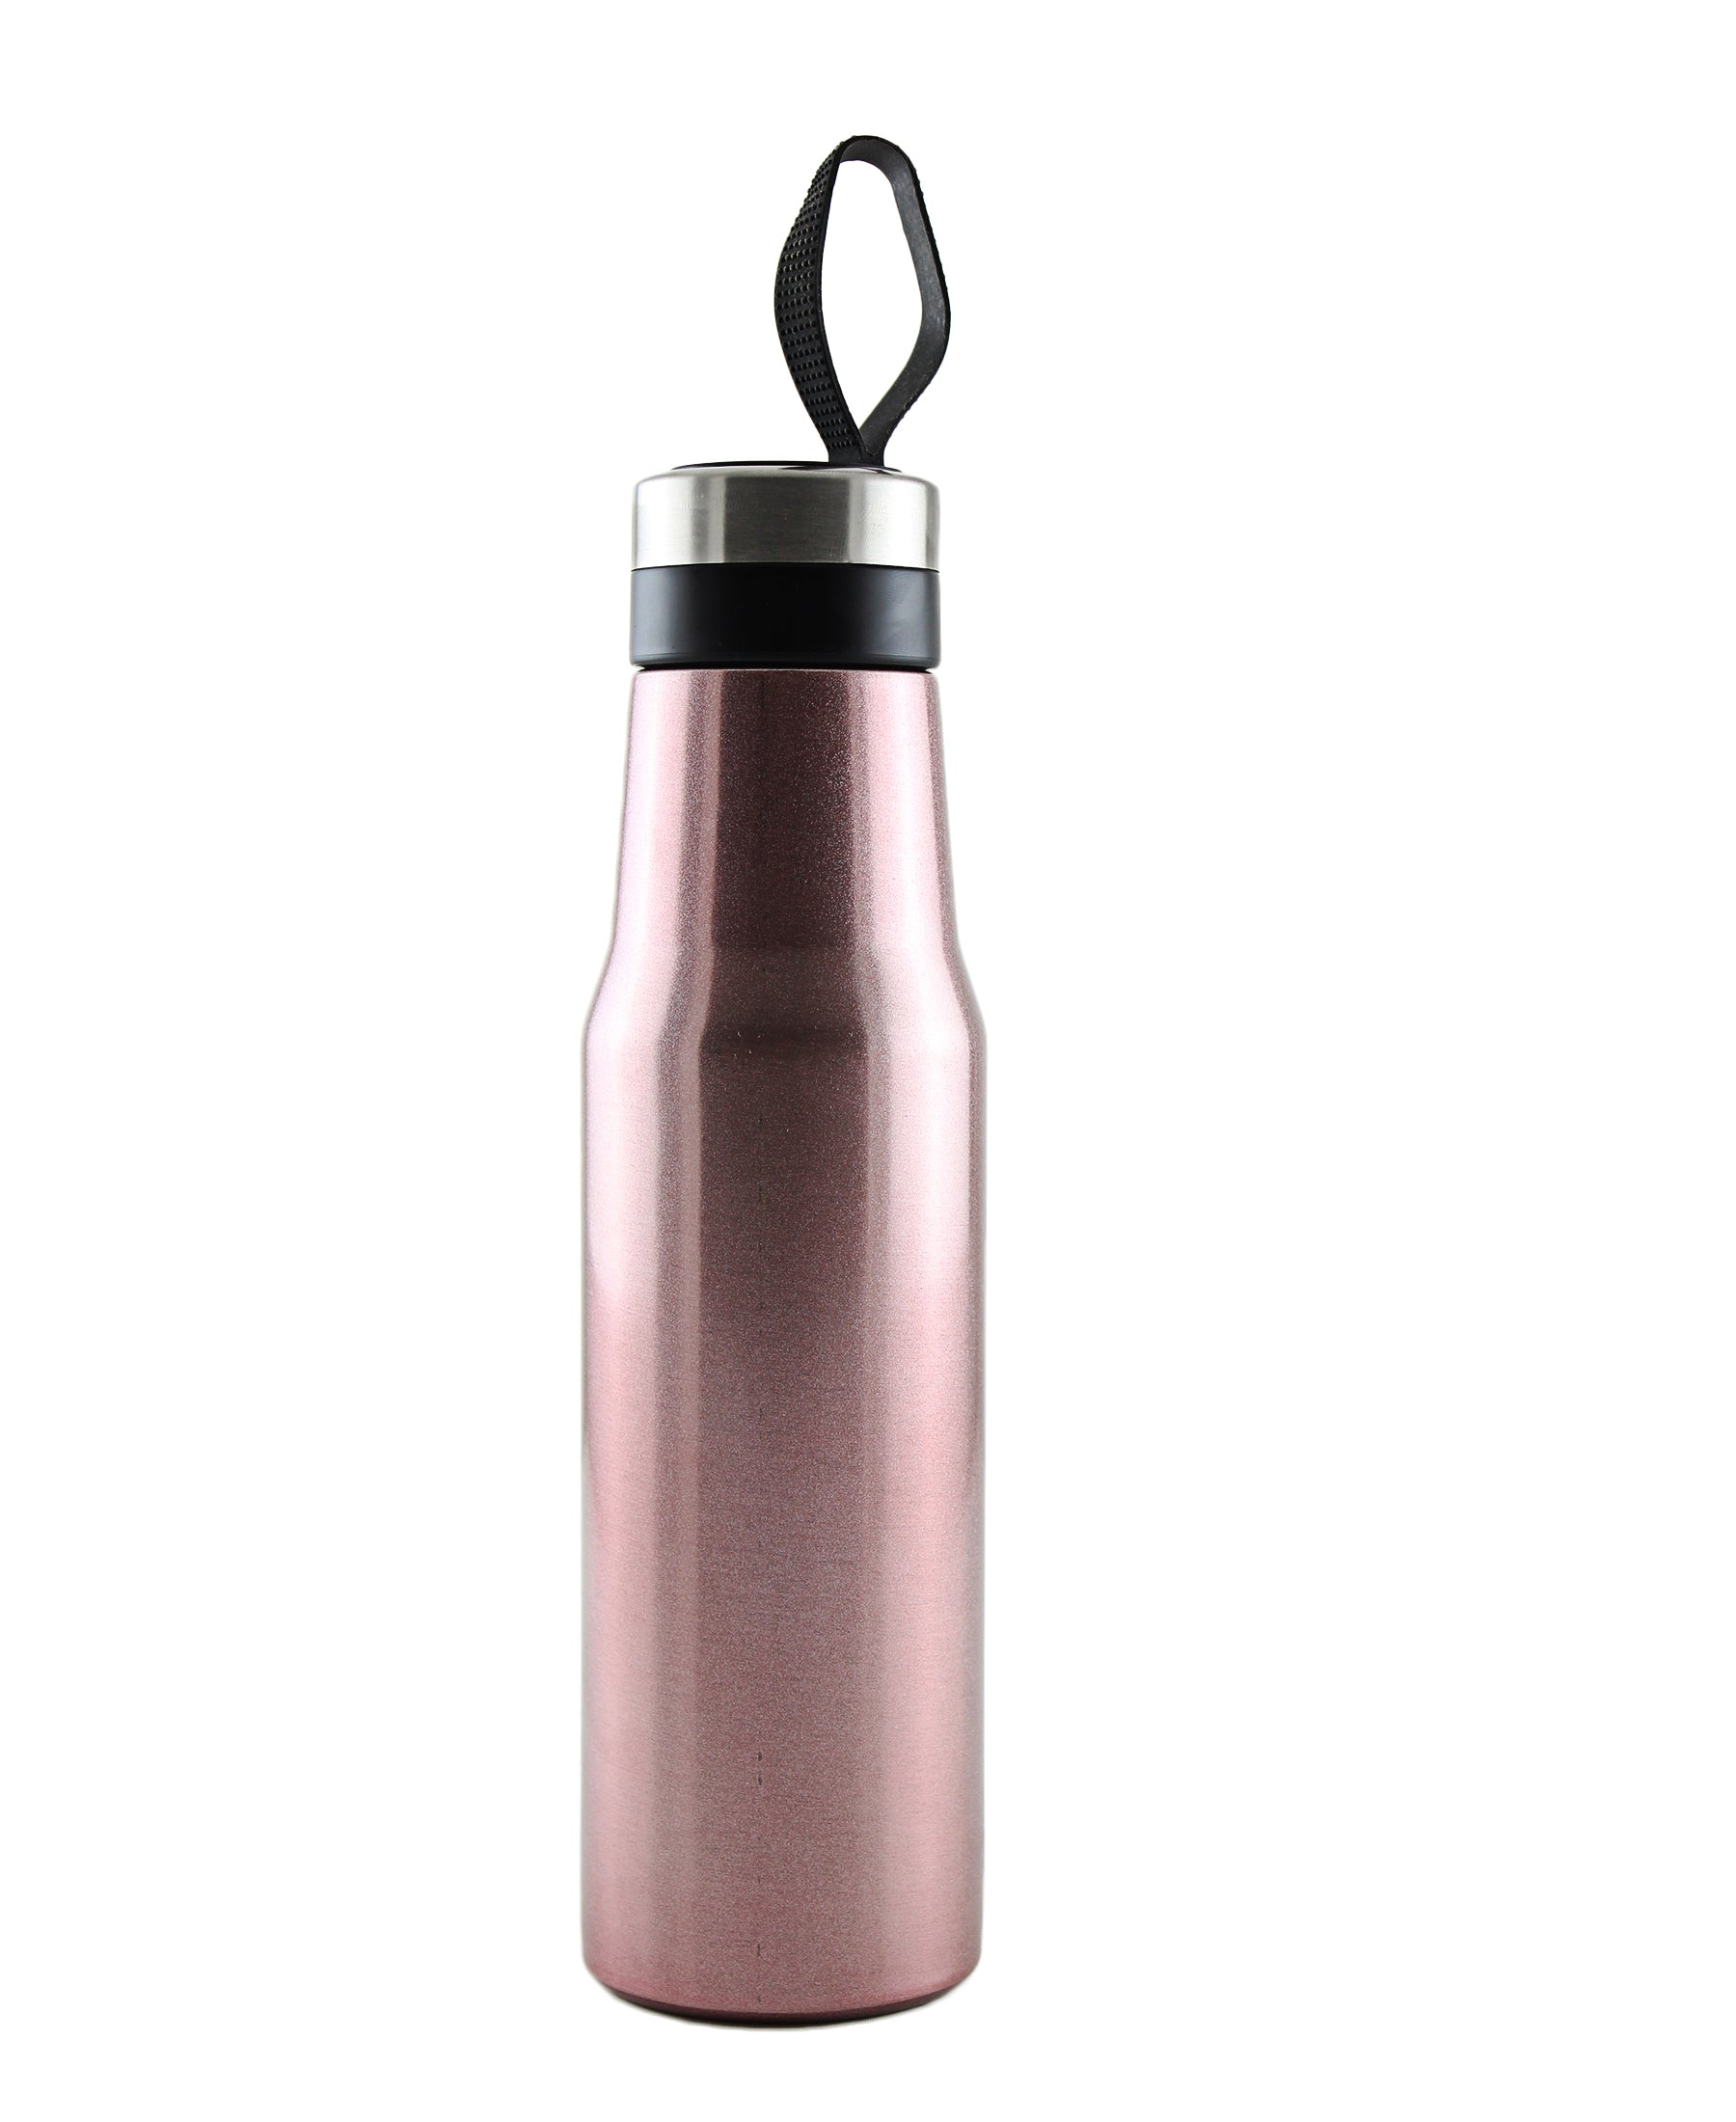 Double wall flask bottle - Rose Gold